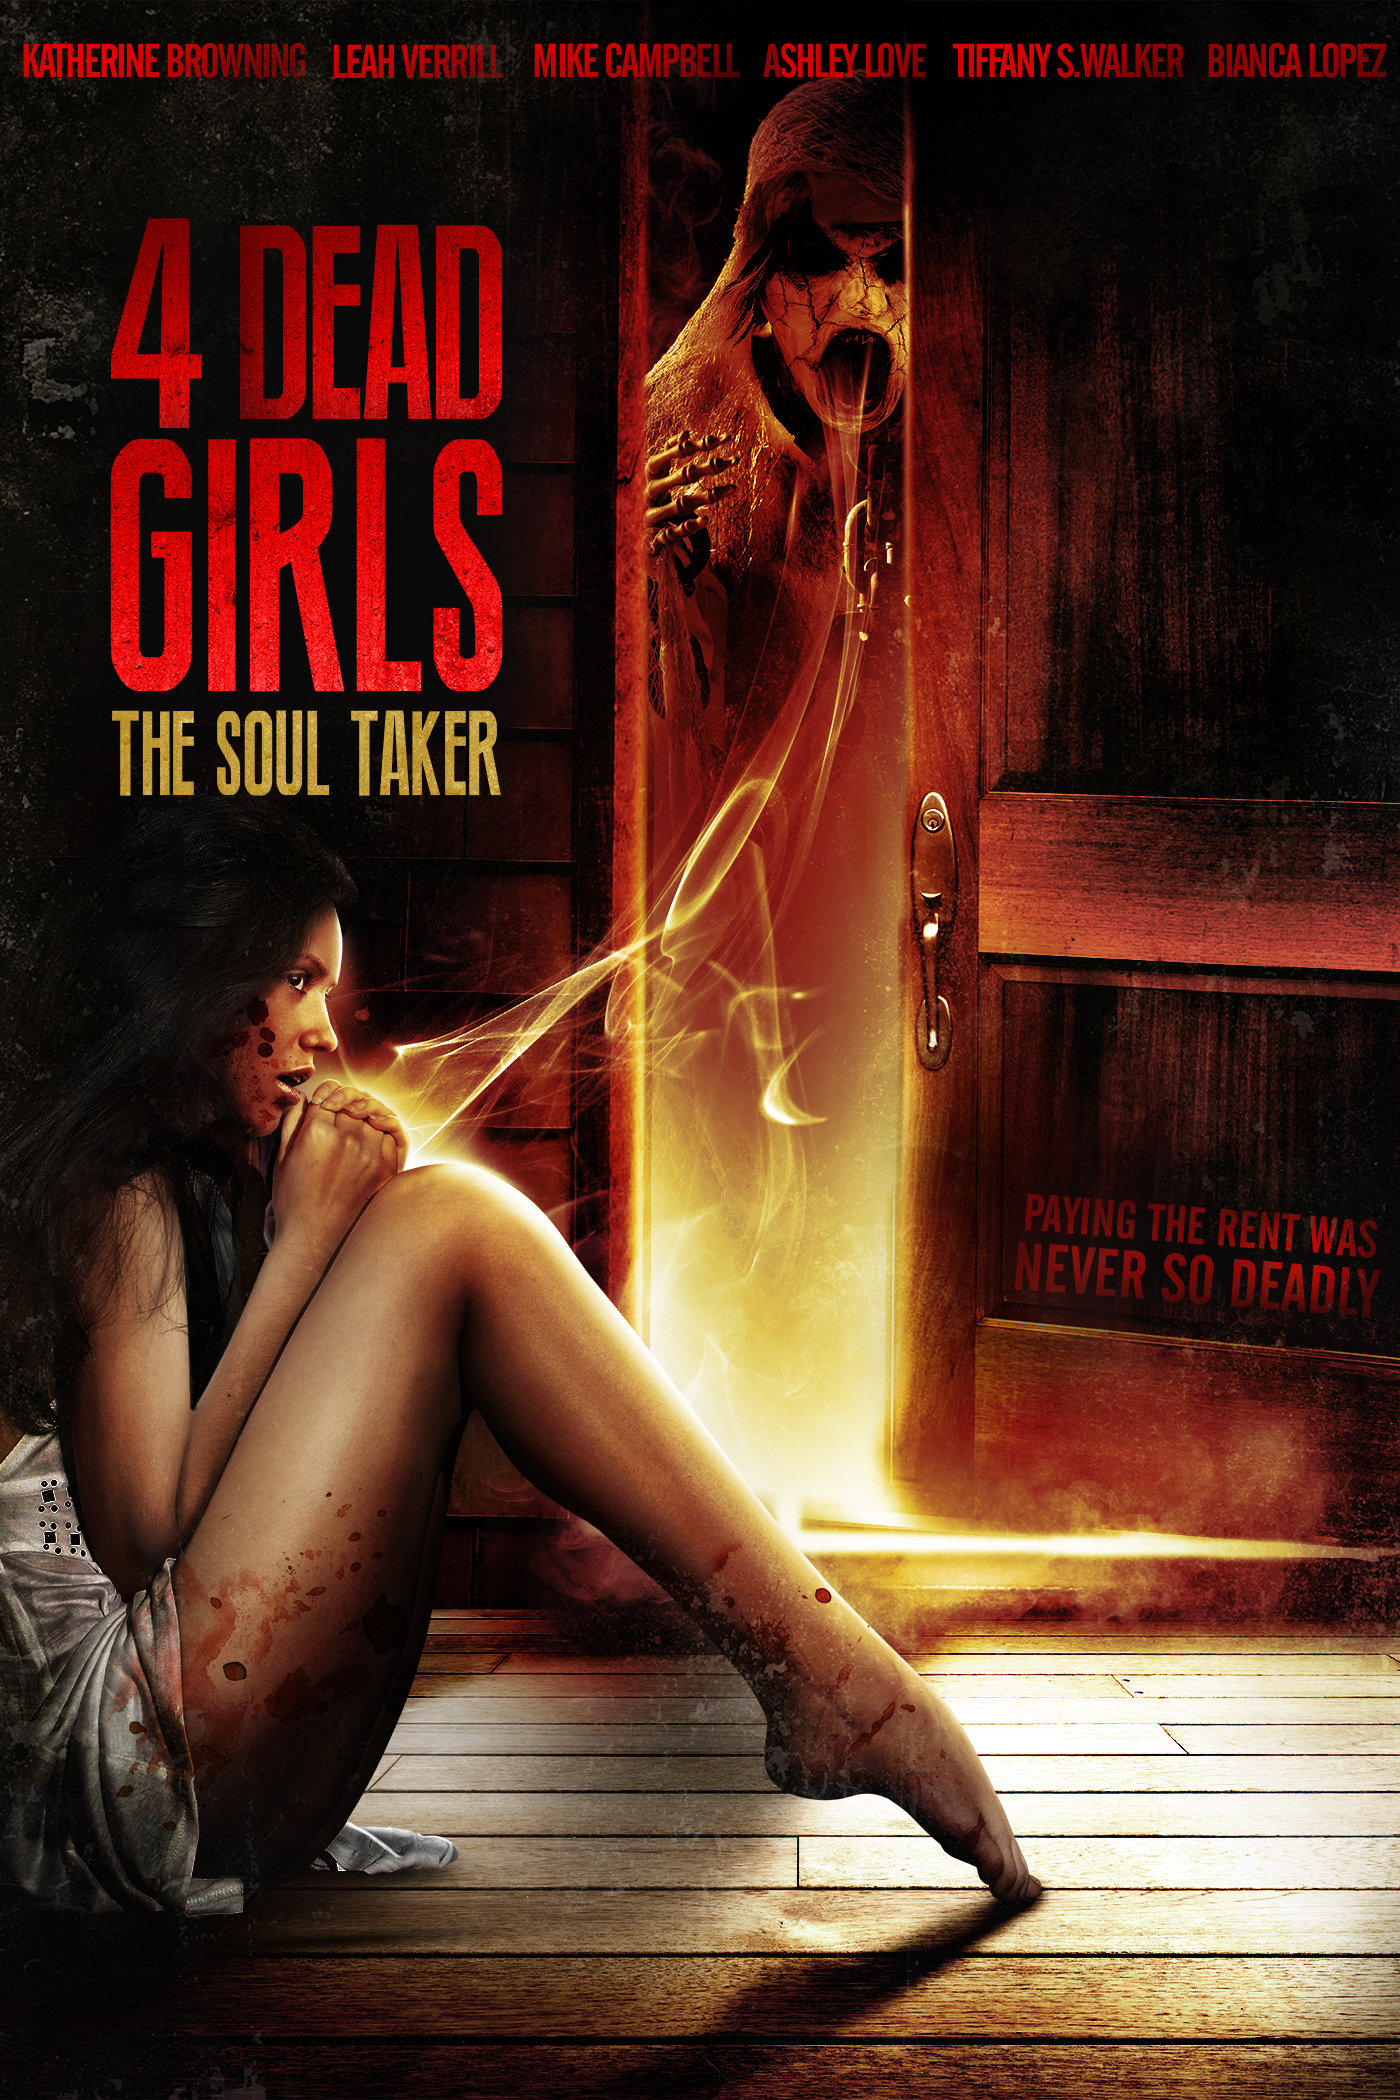 Dead girl horror movie